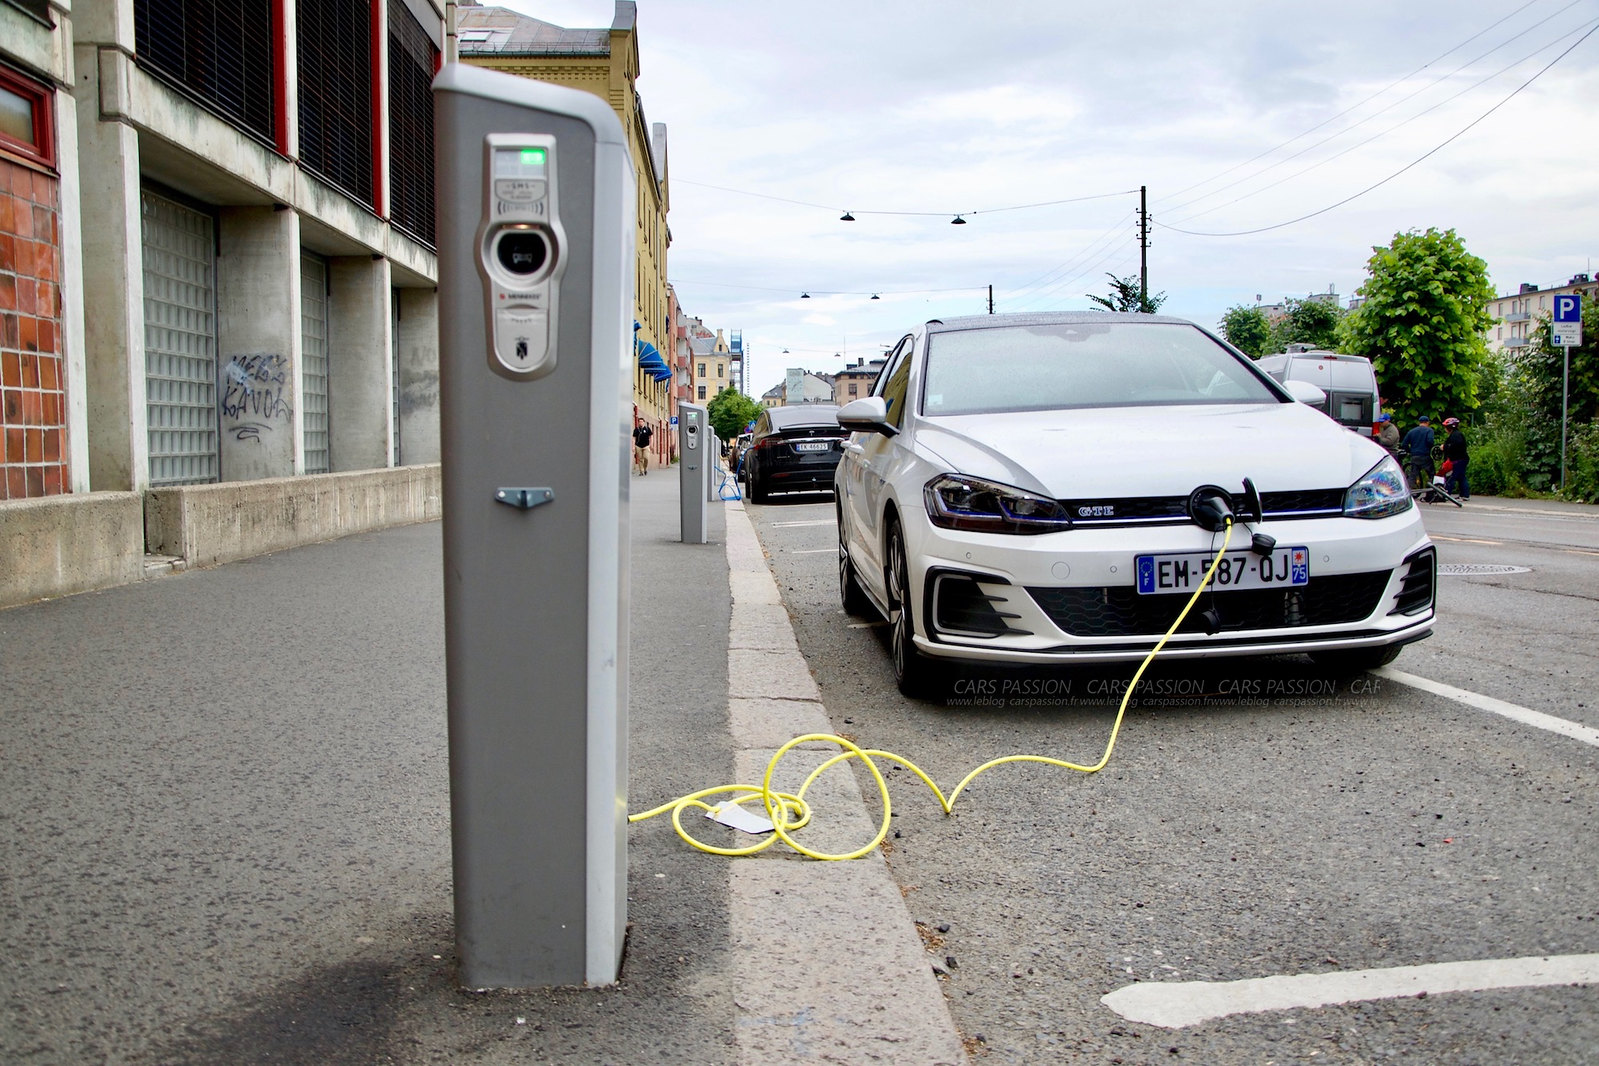 Charge 4 Golf GTE